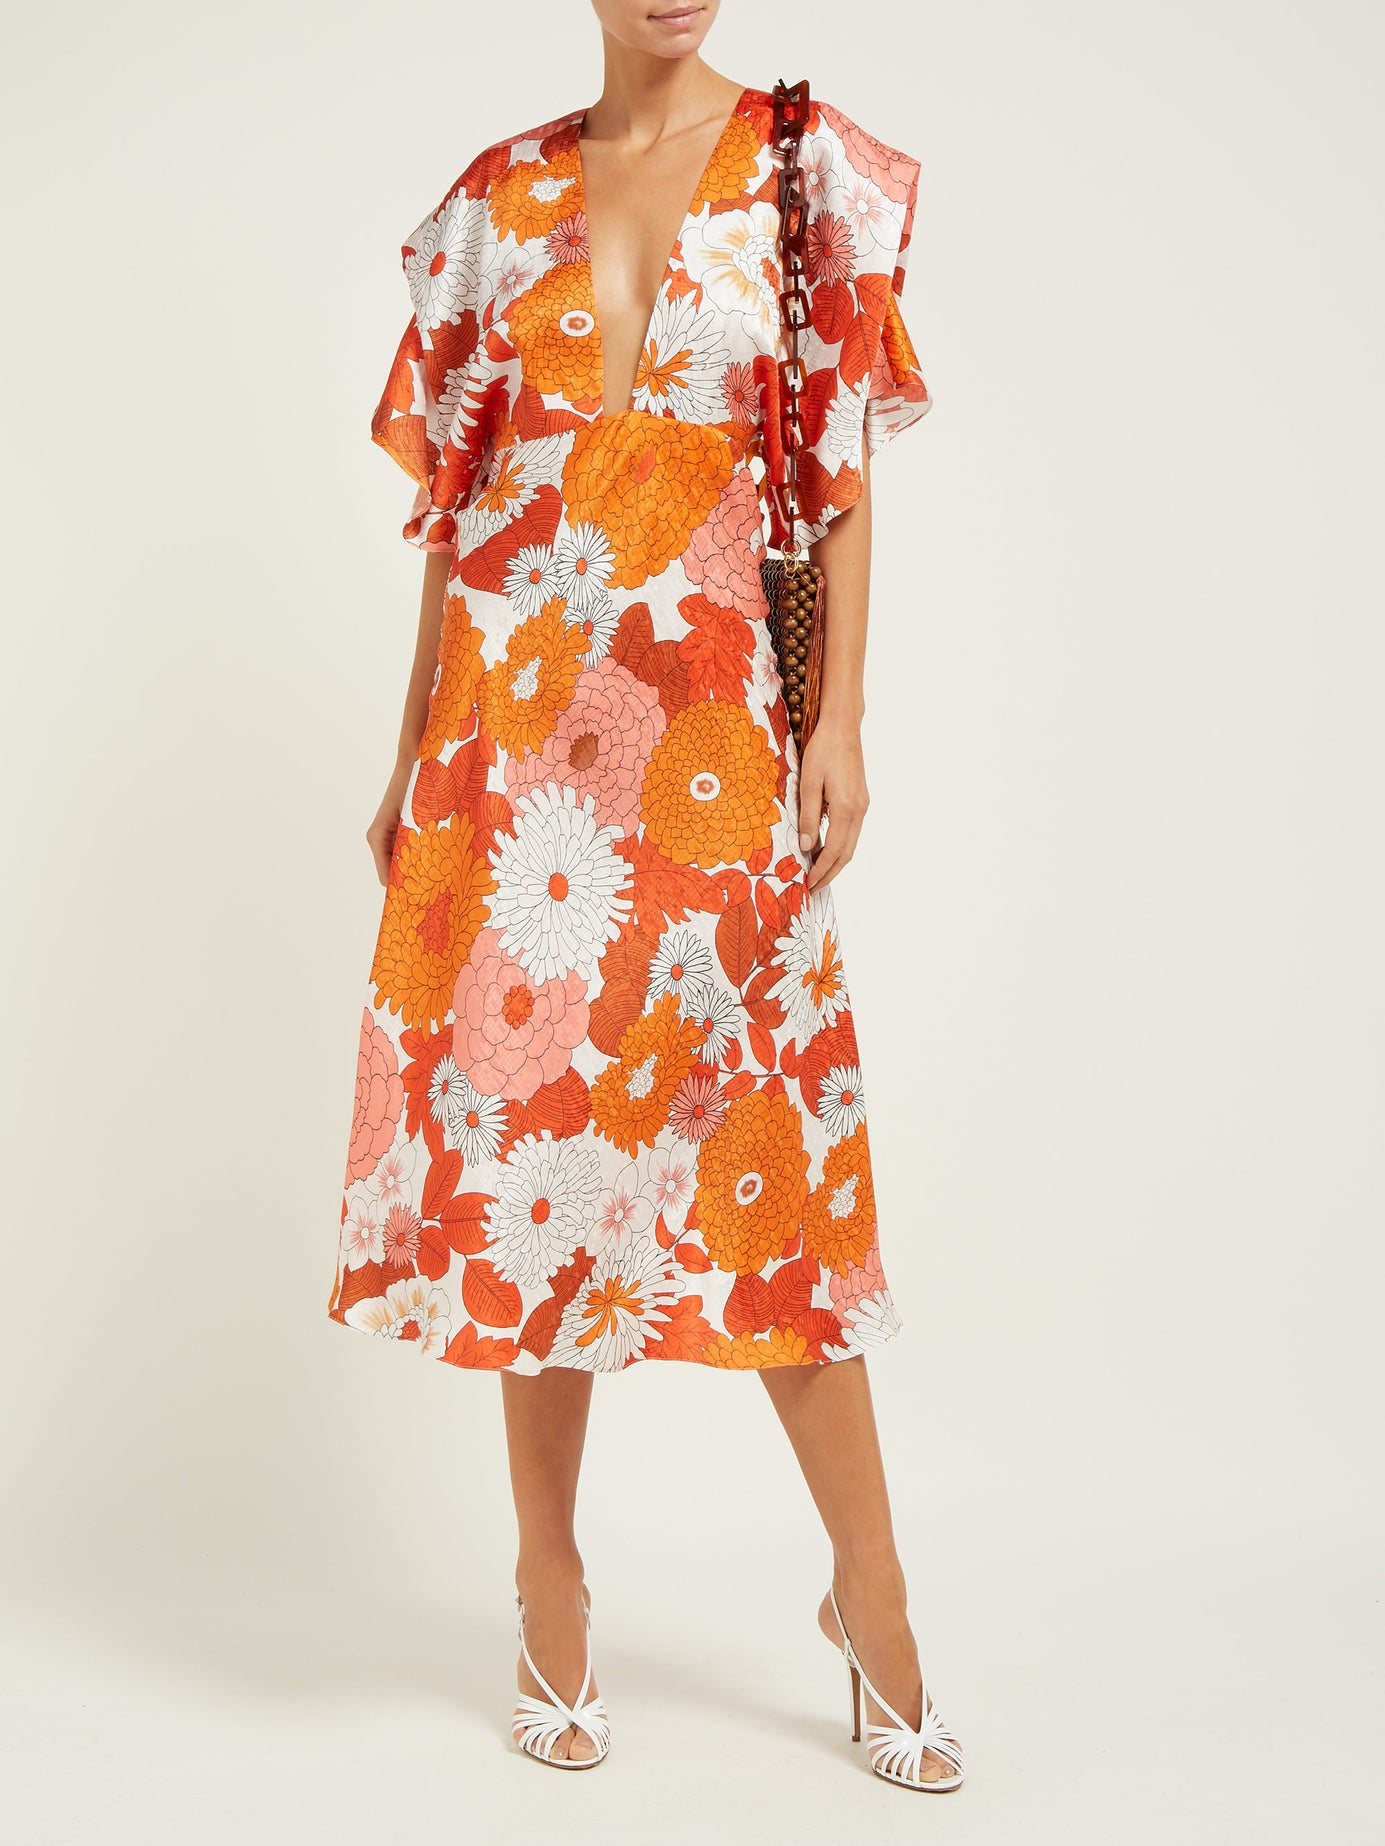 we love the bold print and plunging neckline on this  happy floral frock ! (and it's 50% off today!)